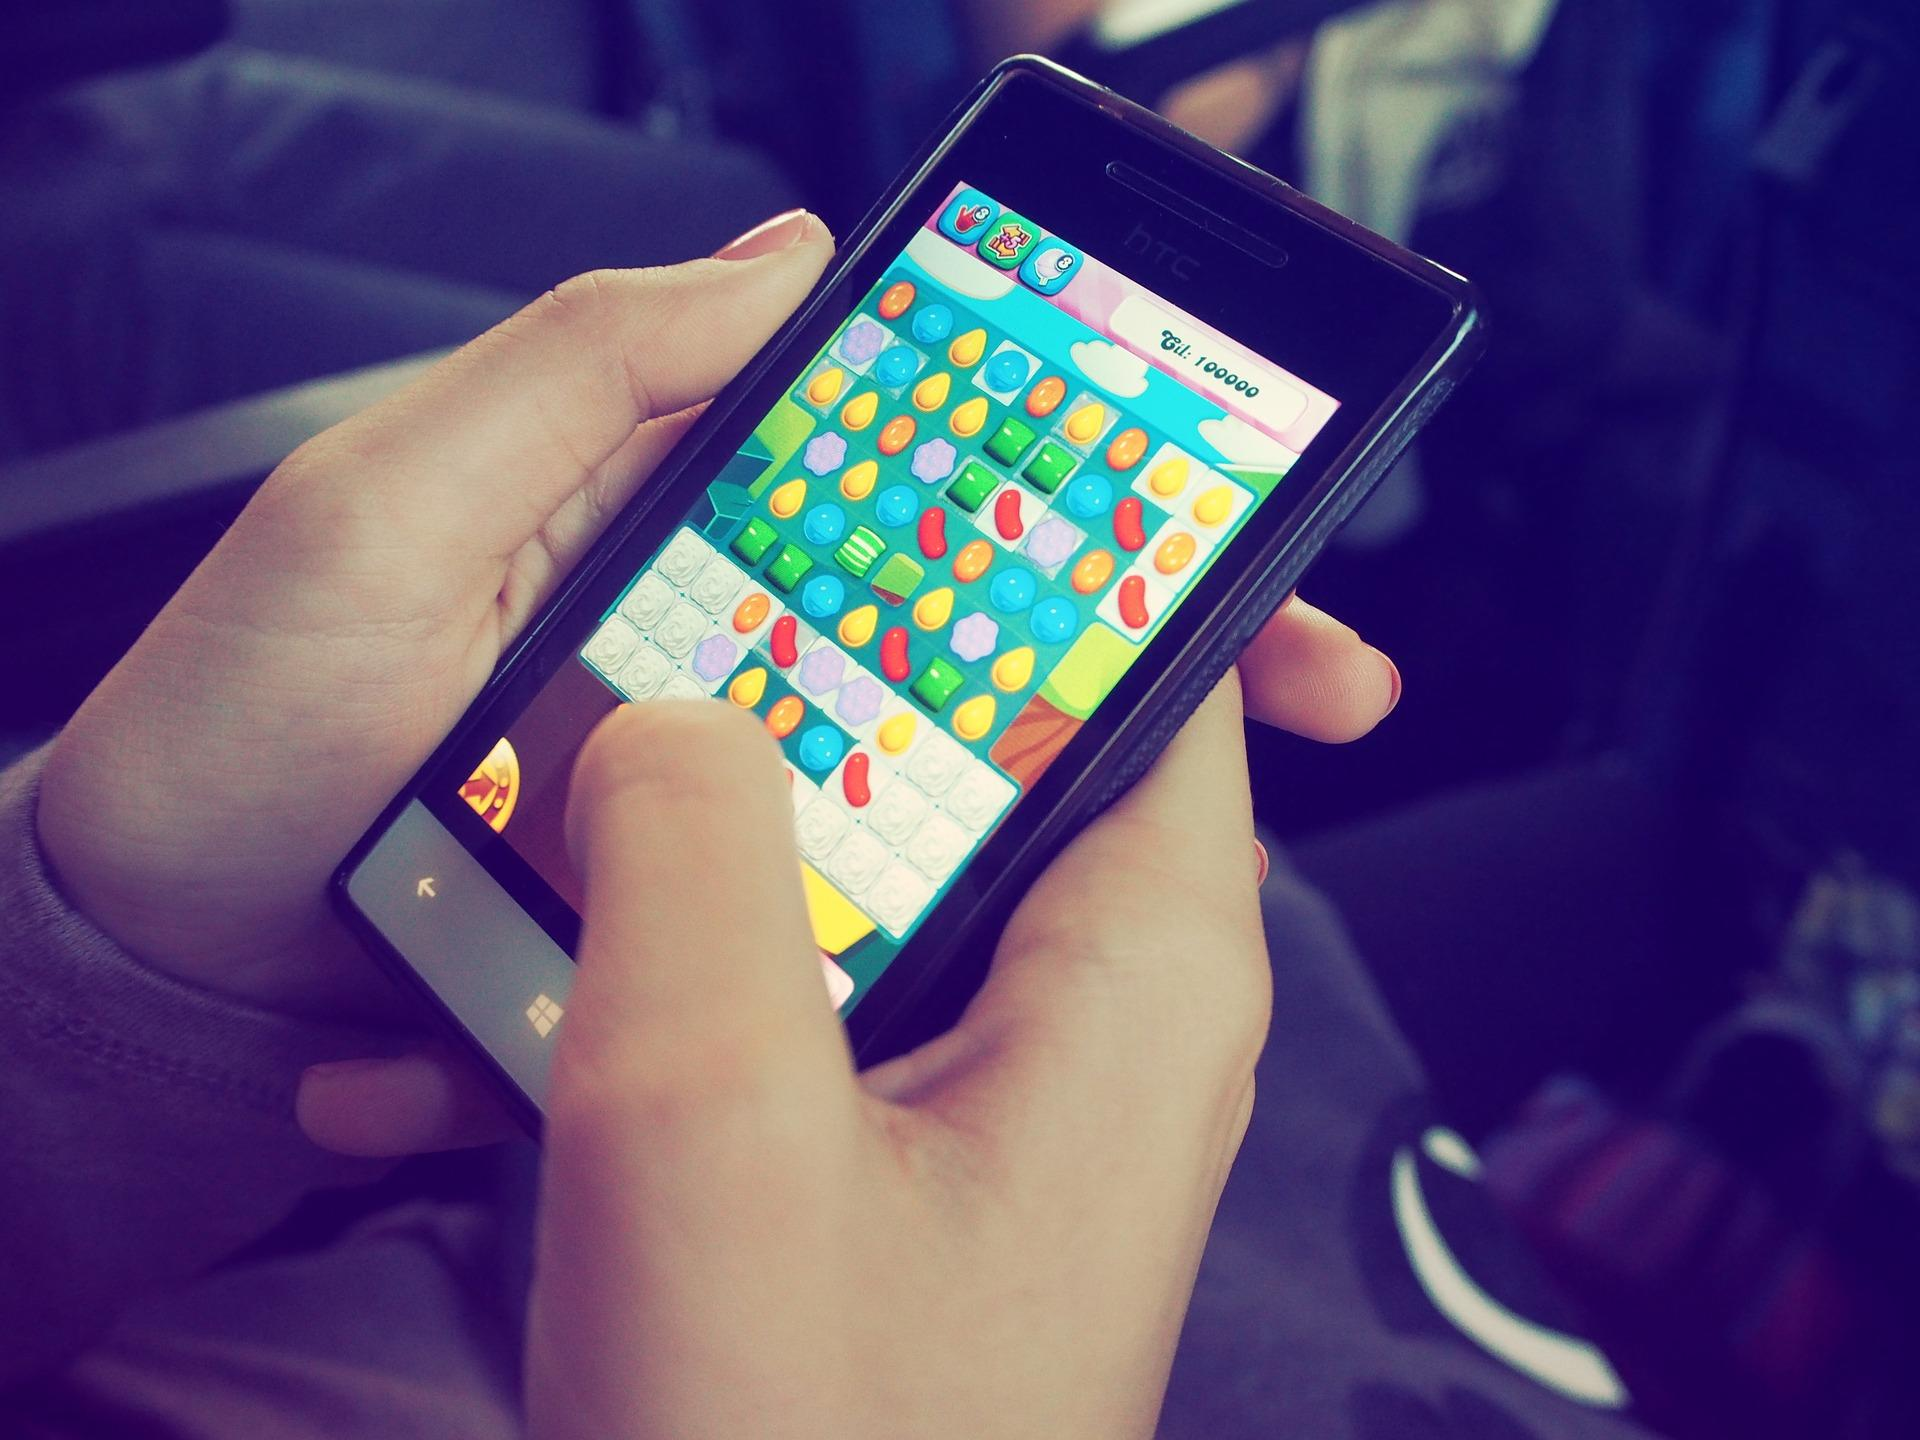 Candy Crush on mobile